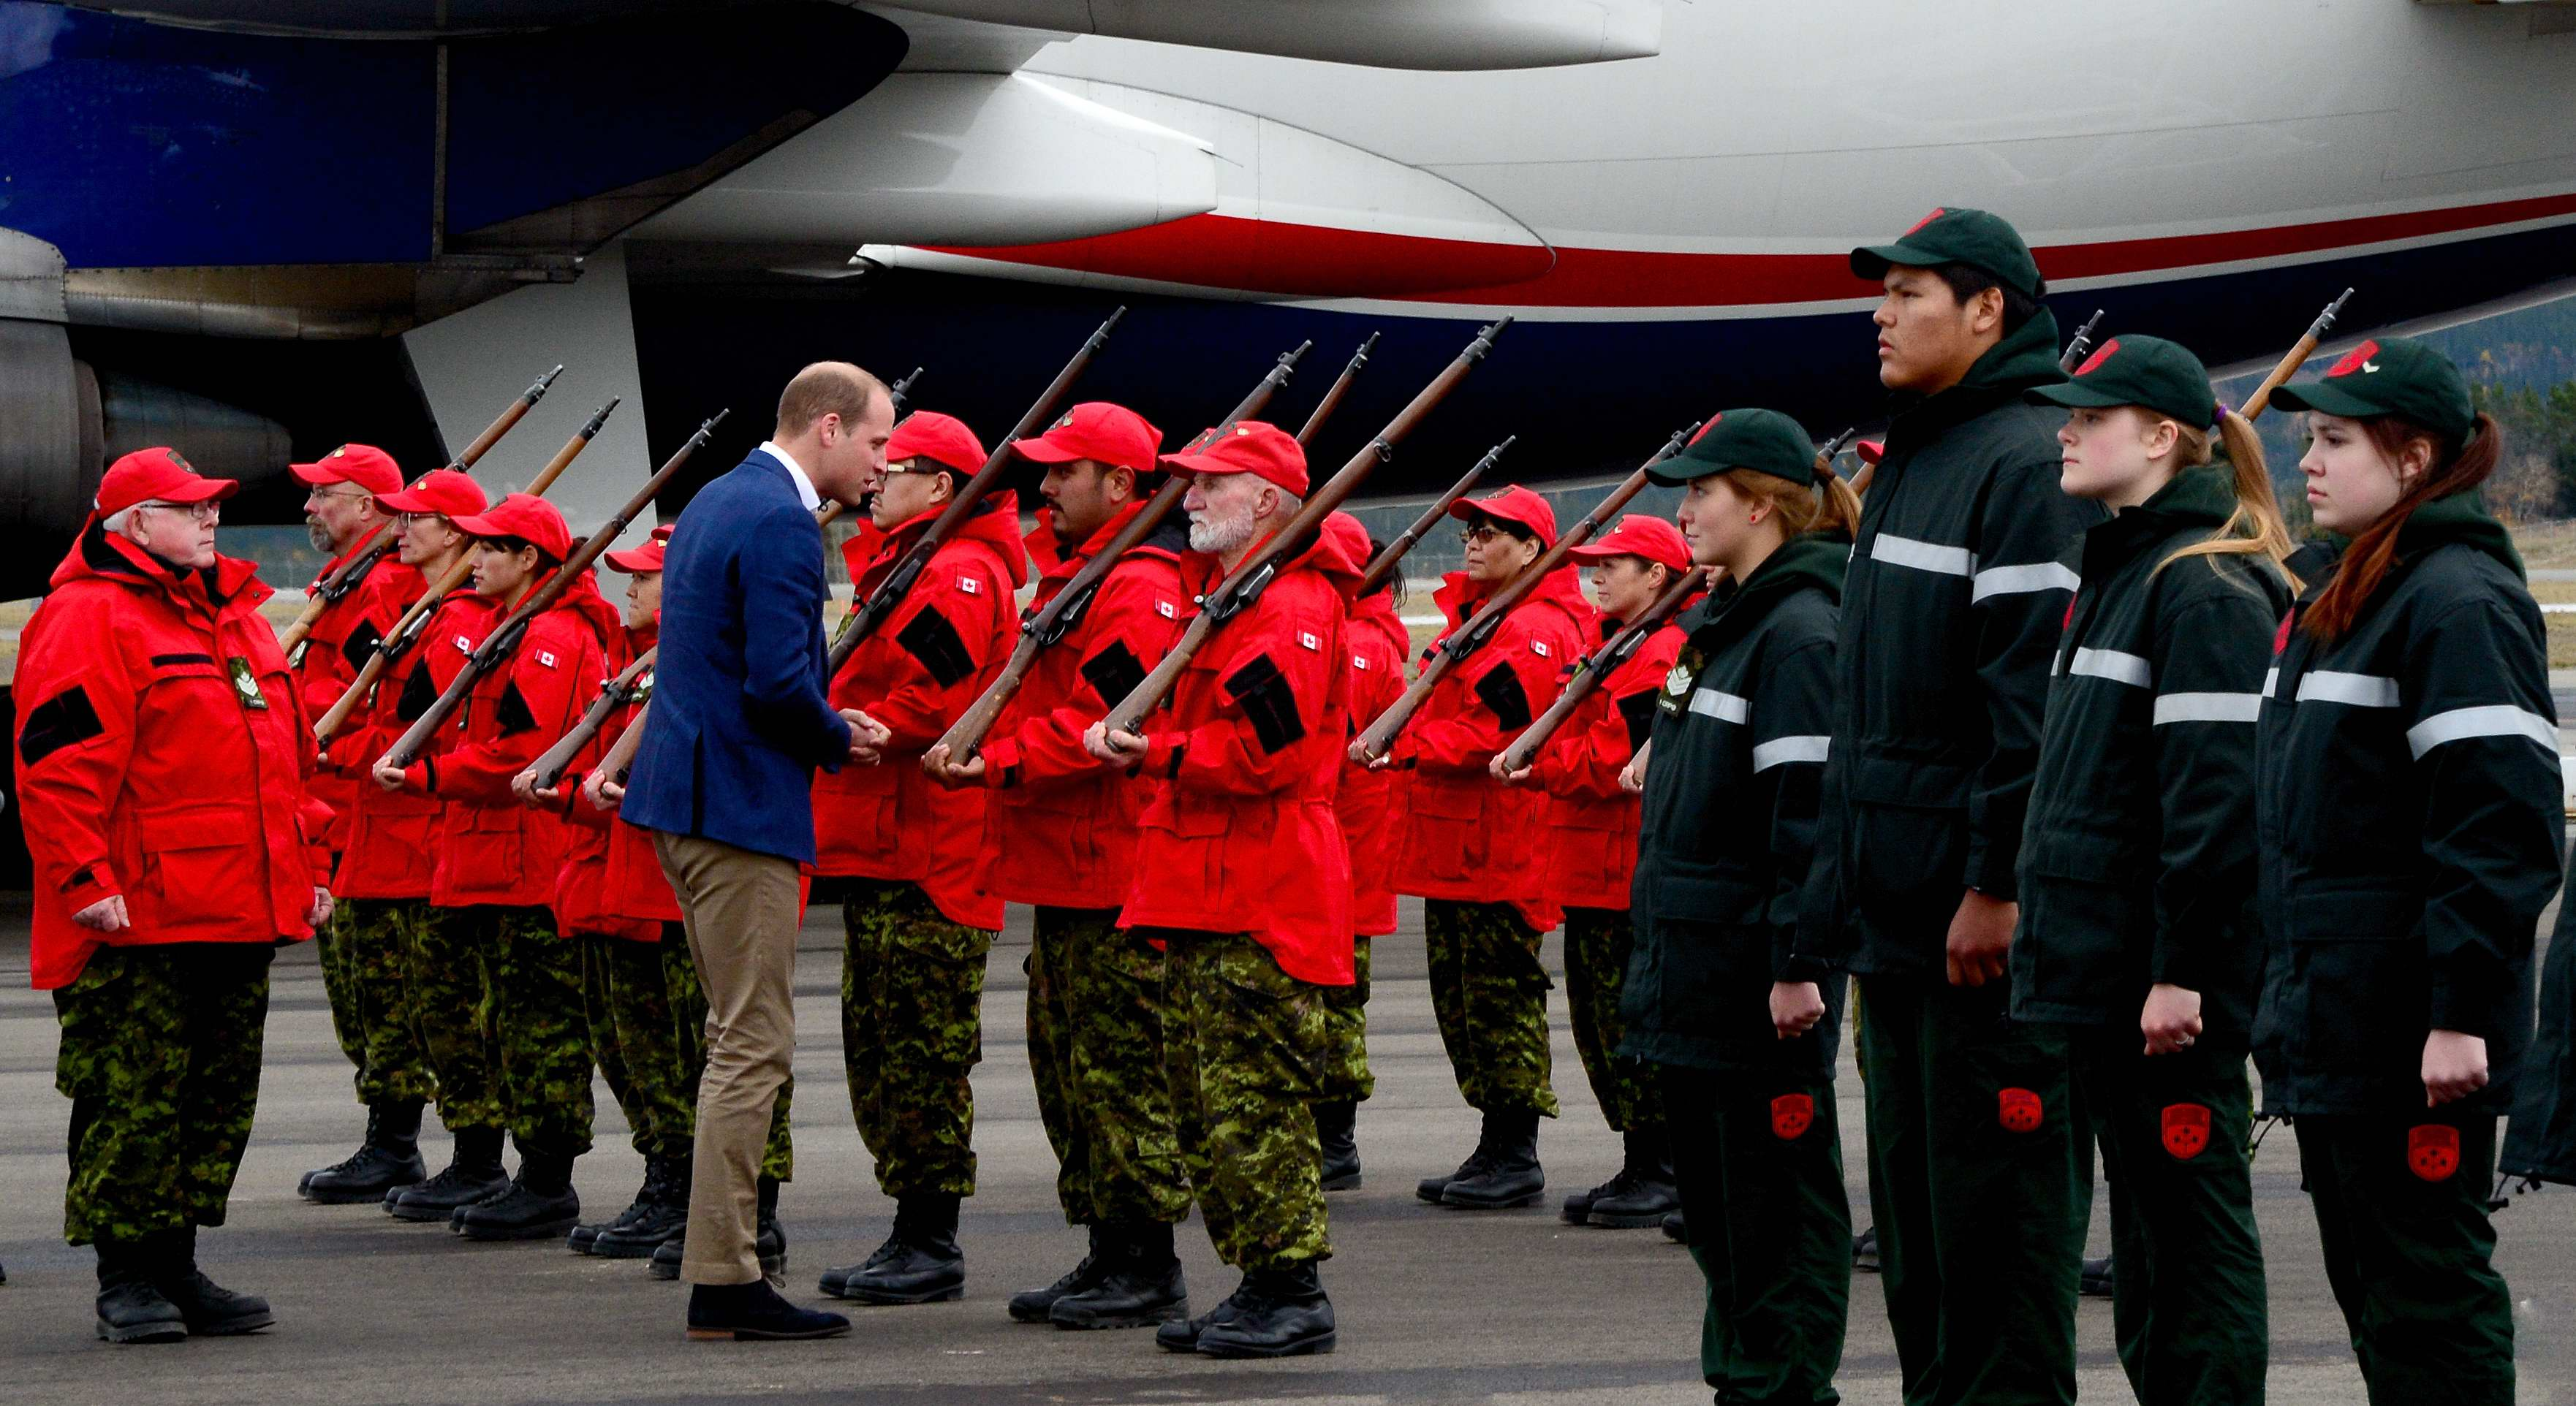 His Royal Highness, Prince William inspects Quarter Guards of the Canadian Rangers and Junior Canadian Rangers